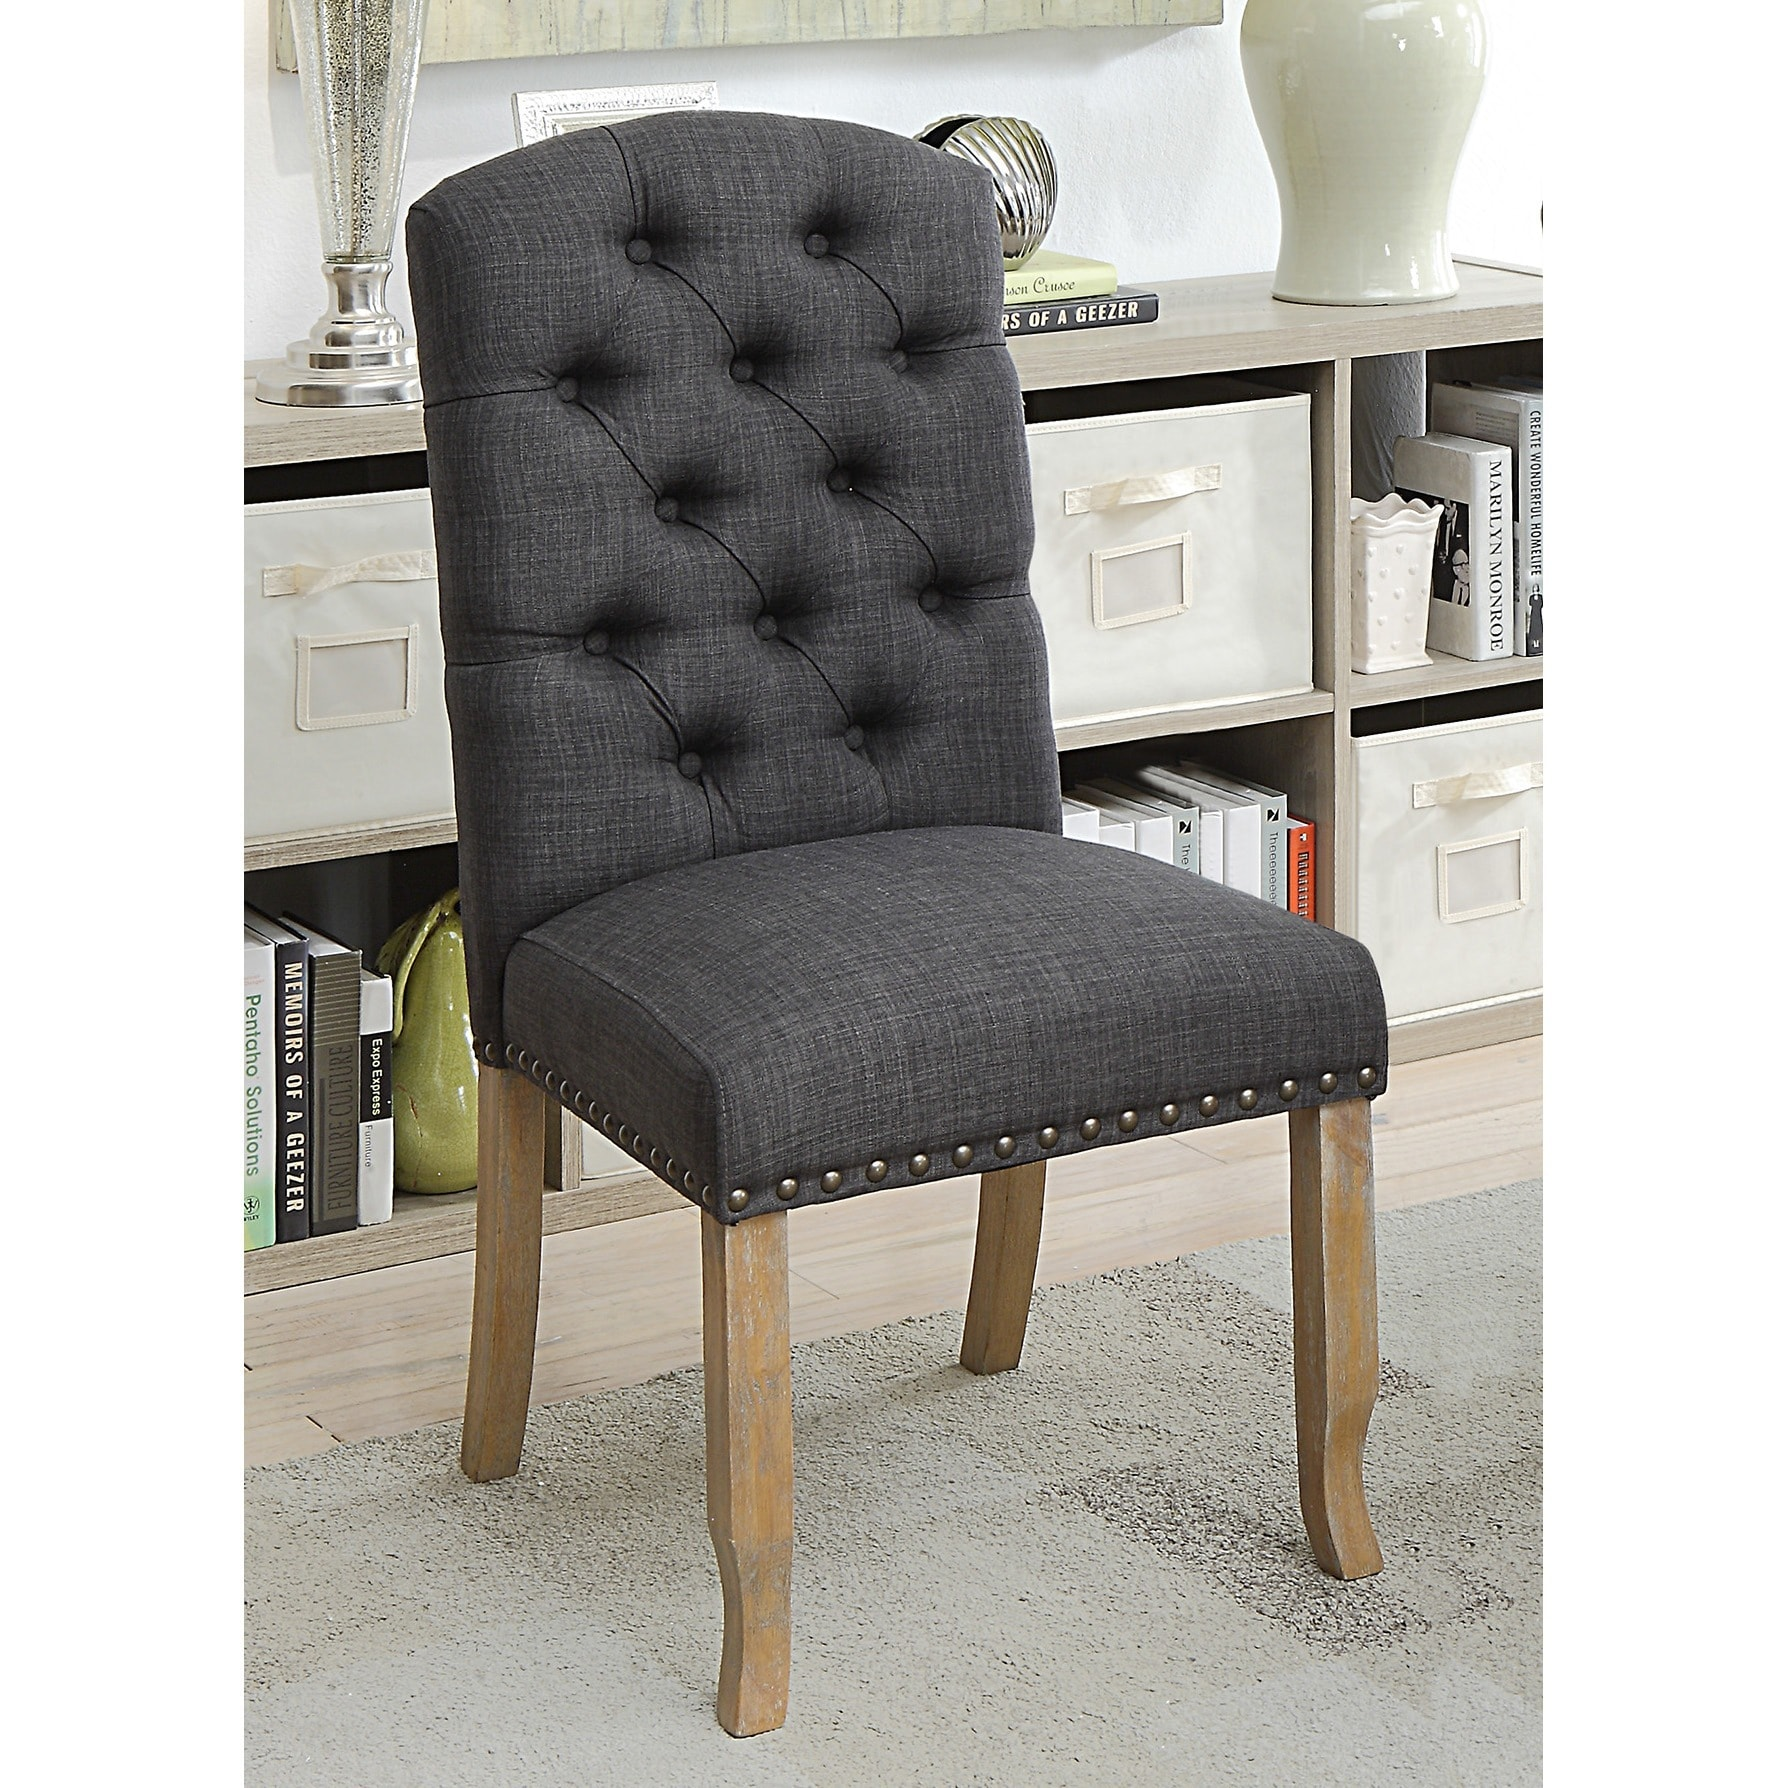 Furniture Of America Matheson Rustic Tufted Dining Chairs (Set Of 2)   Free  Shipping Today   Overstock   26120439